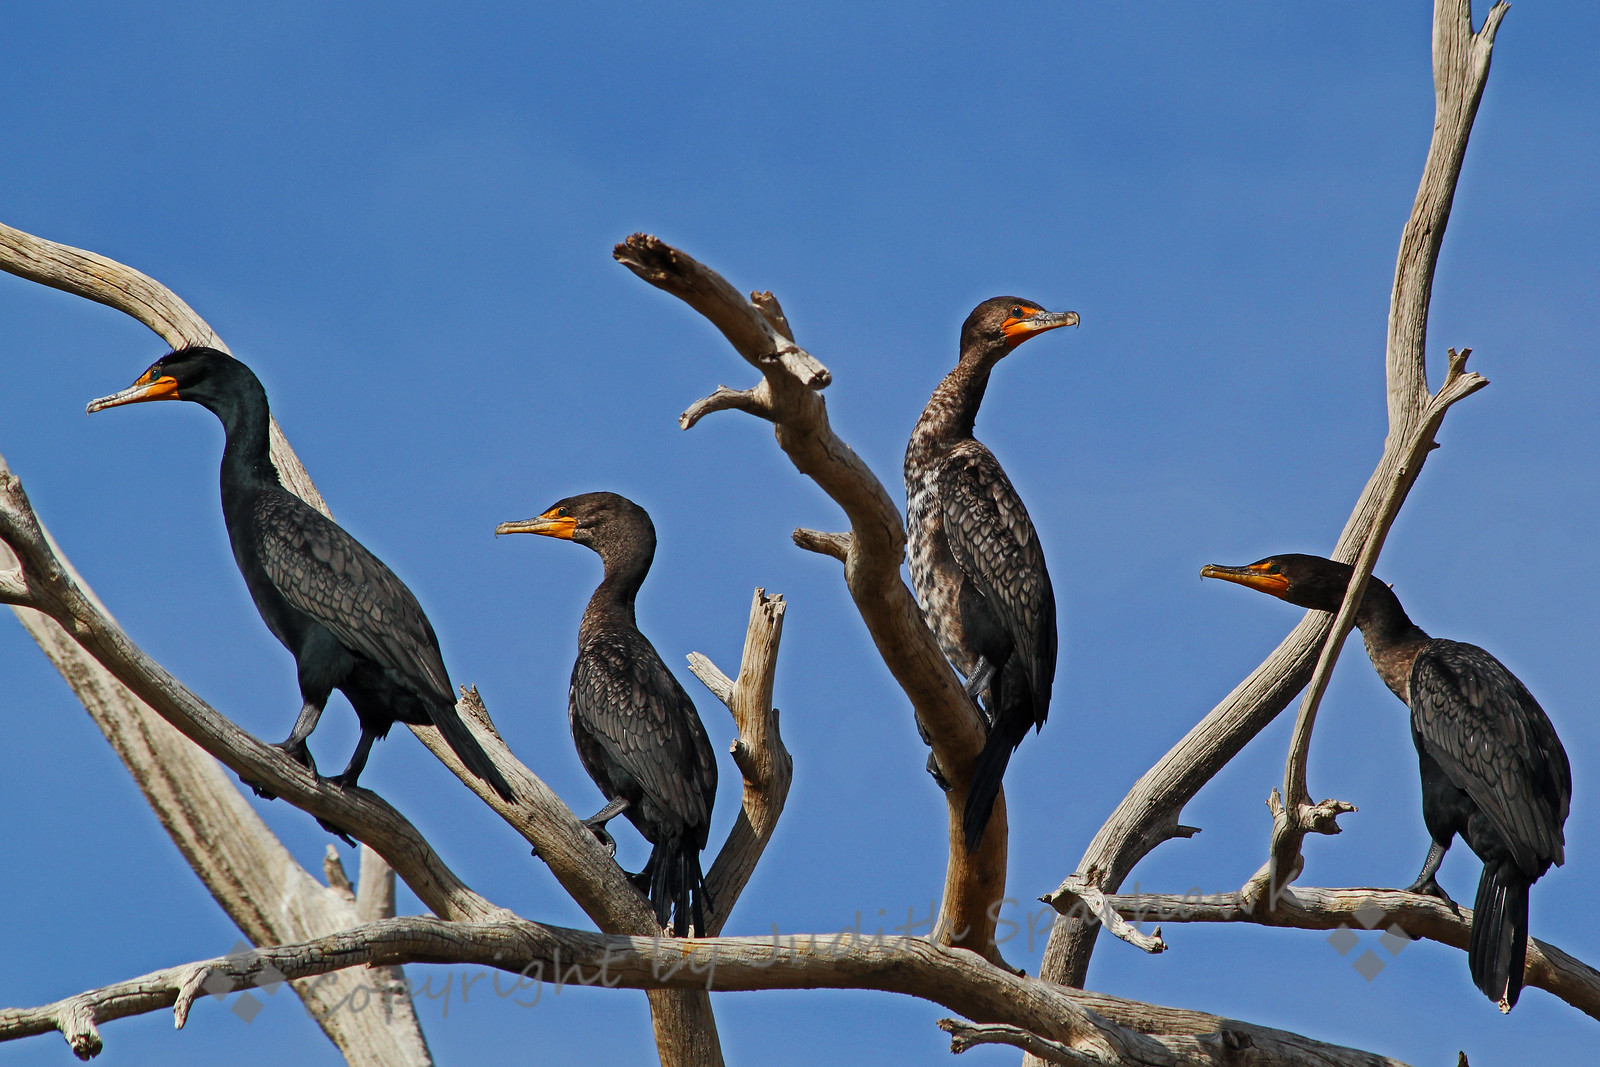 Cormorants in a Tree ~ These Double-crested Cormorants are wintering at Salton Sea.  The second one to the right is a juvenile, shown by the mottled plumage.